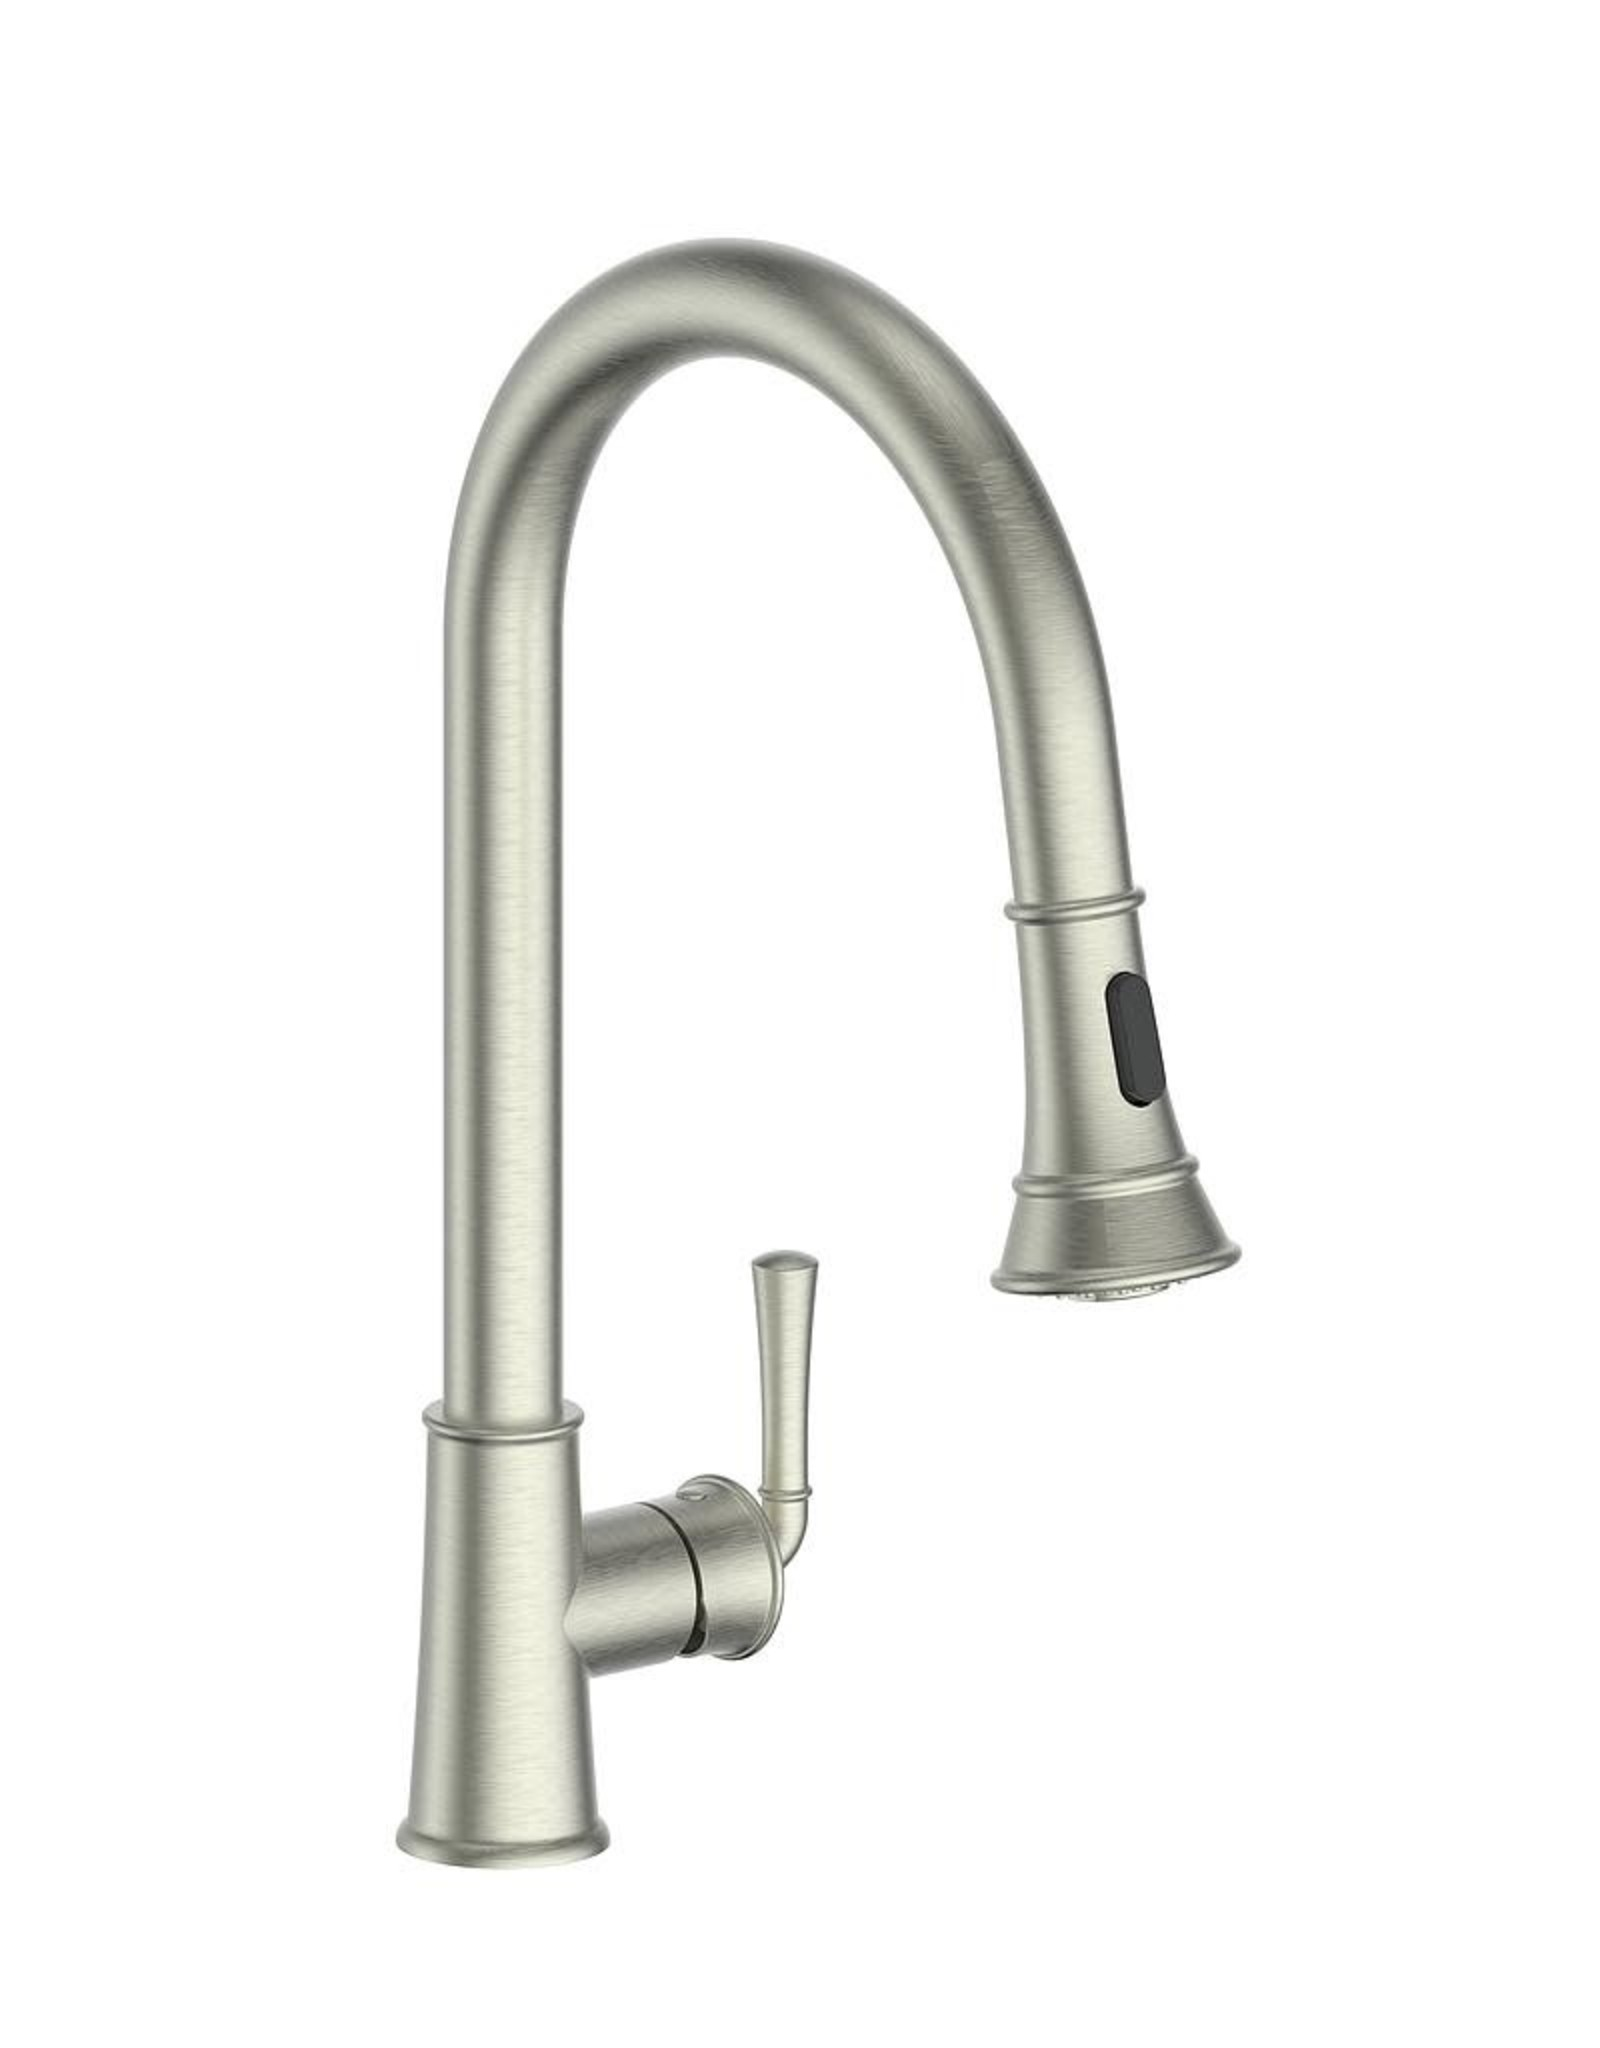 Vogt VOGT MURAU - KITCHEN FAUCET WITH 2-FUNCTION PULL-DOWN SPRAY